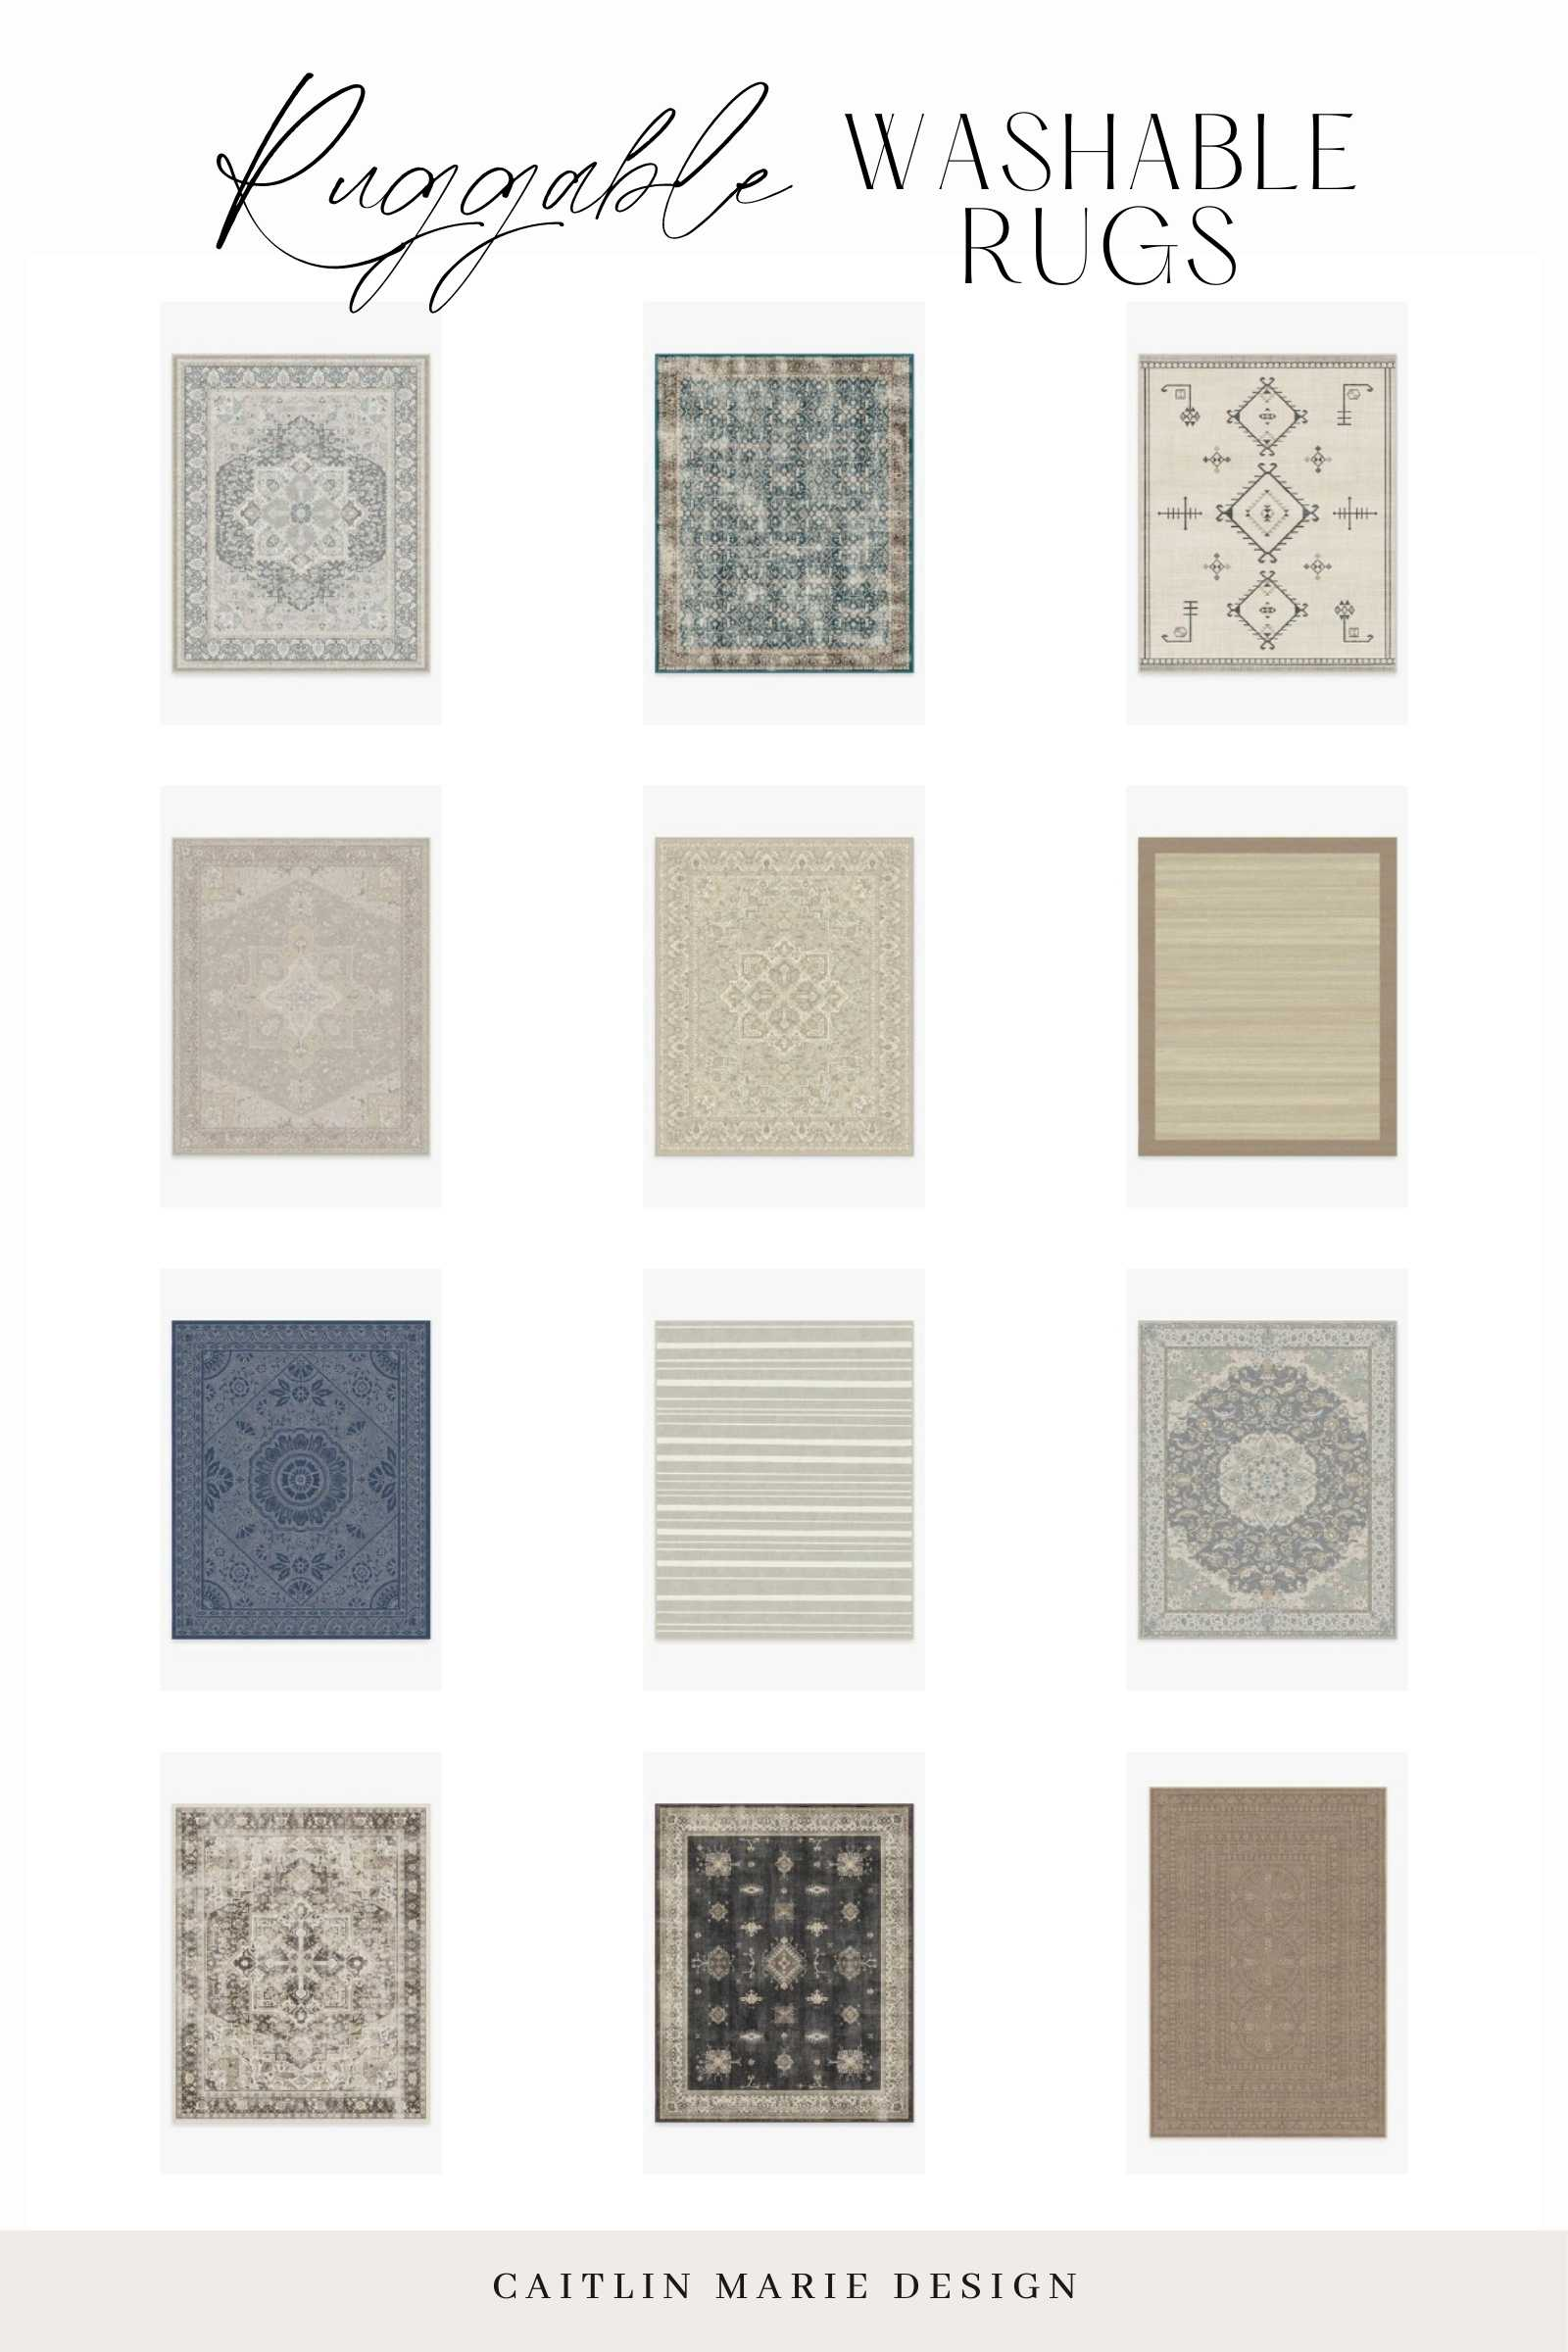 Ruggable Washable Rugs roundup collage